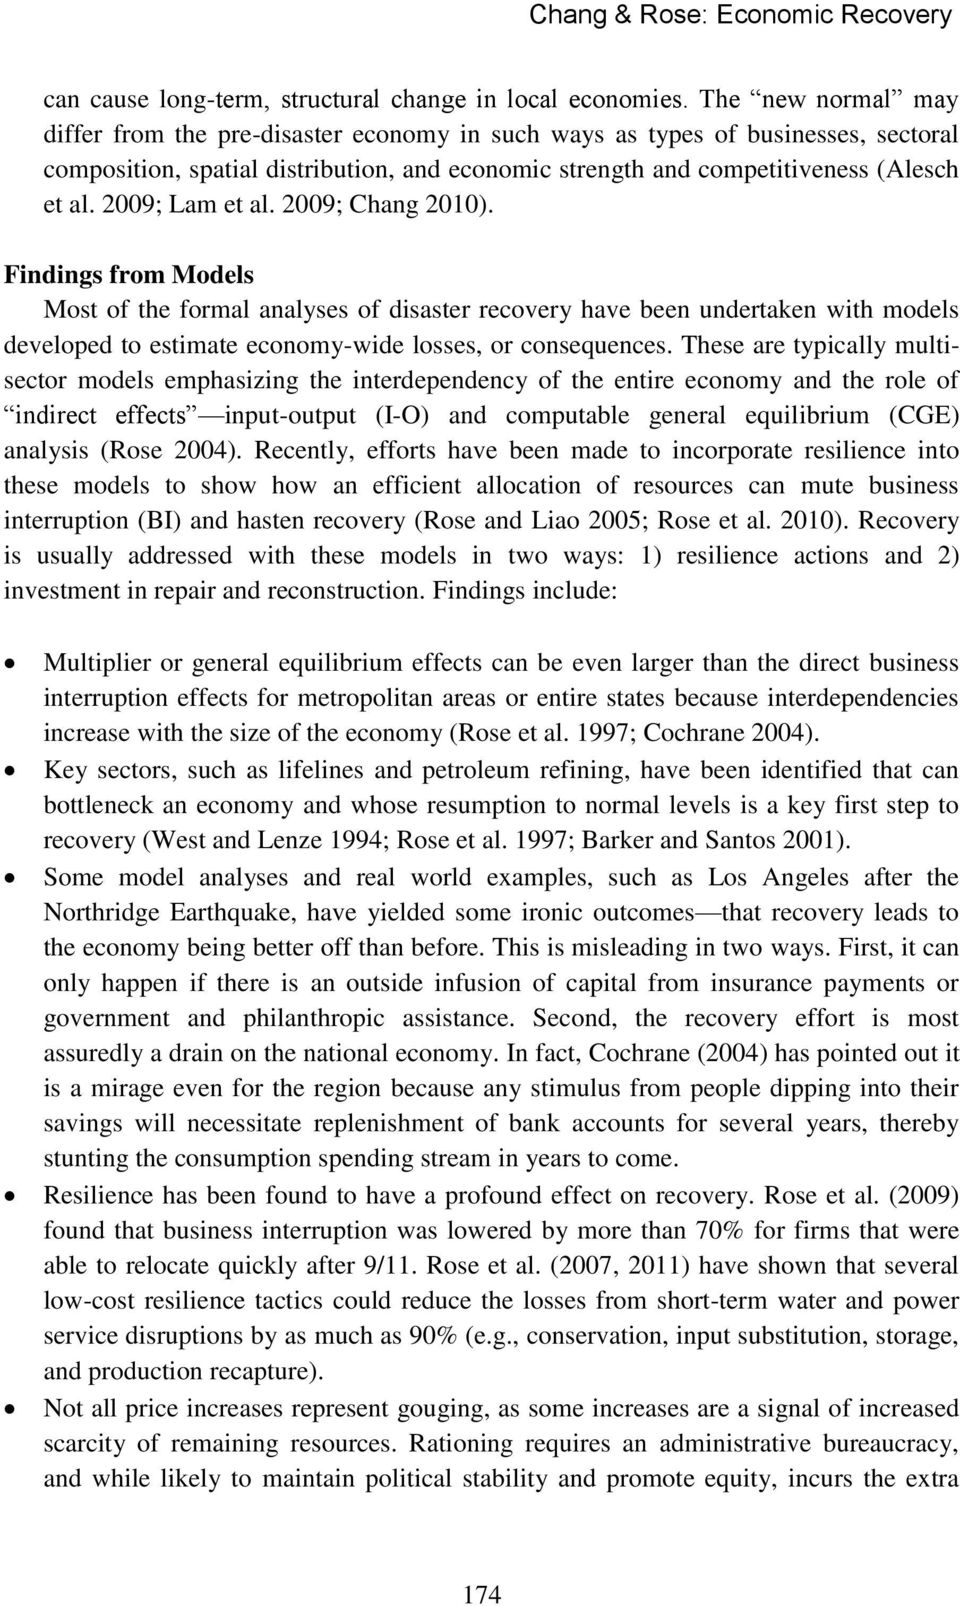 2009; Lam et al. 2009; Chang 2010). Findings from Models Most of the formal analyses of disaster recovery have been undertaken with models developed to estimate economy-wide losses, or consequences.